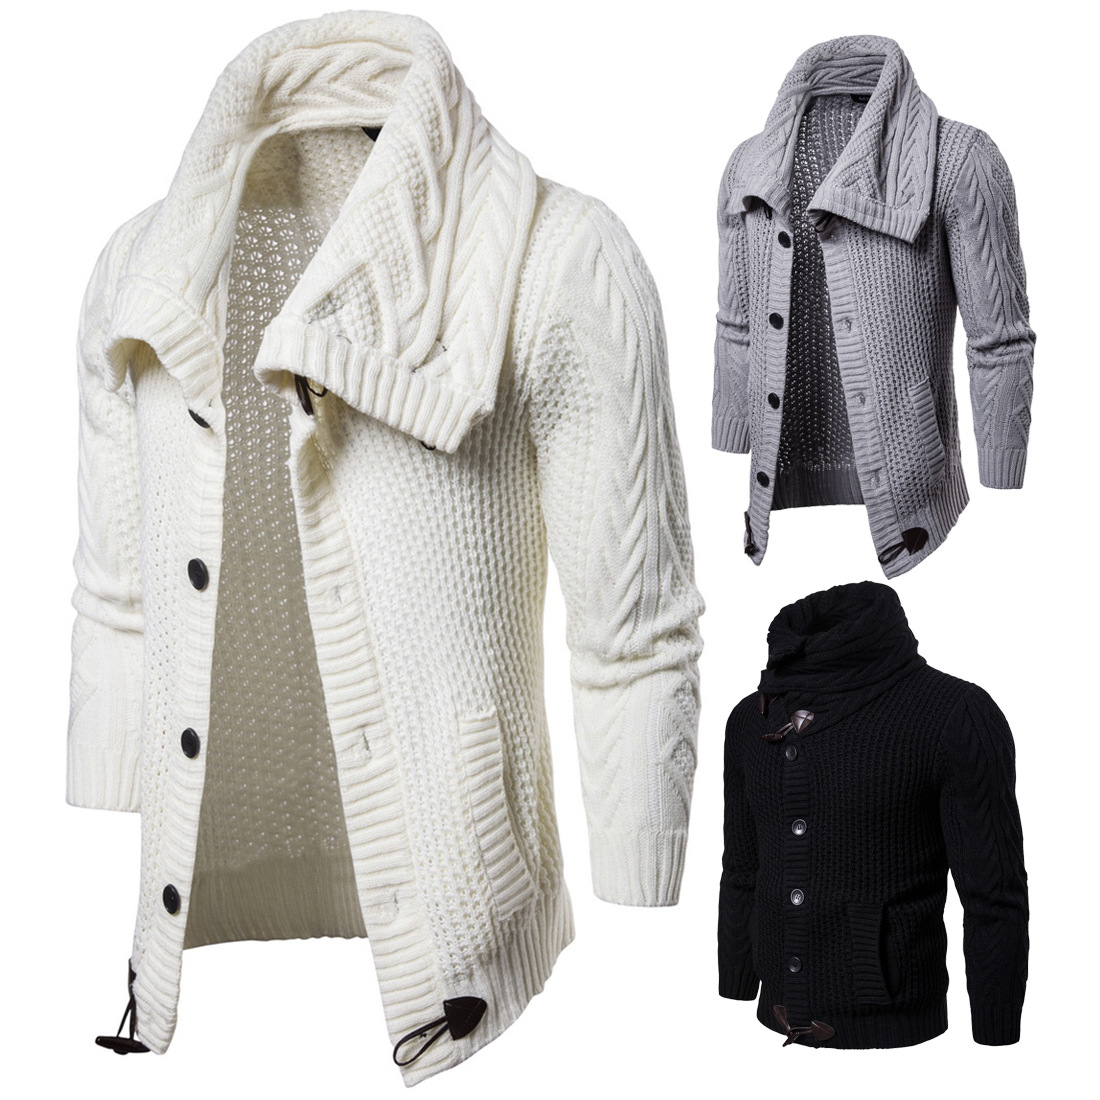 YM019 Autumn Men's Clothing New Young Men's Overcoat Pure Color Knitted Cardigan Sweater Jacket